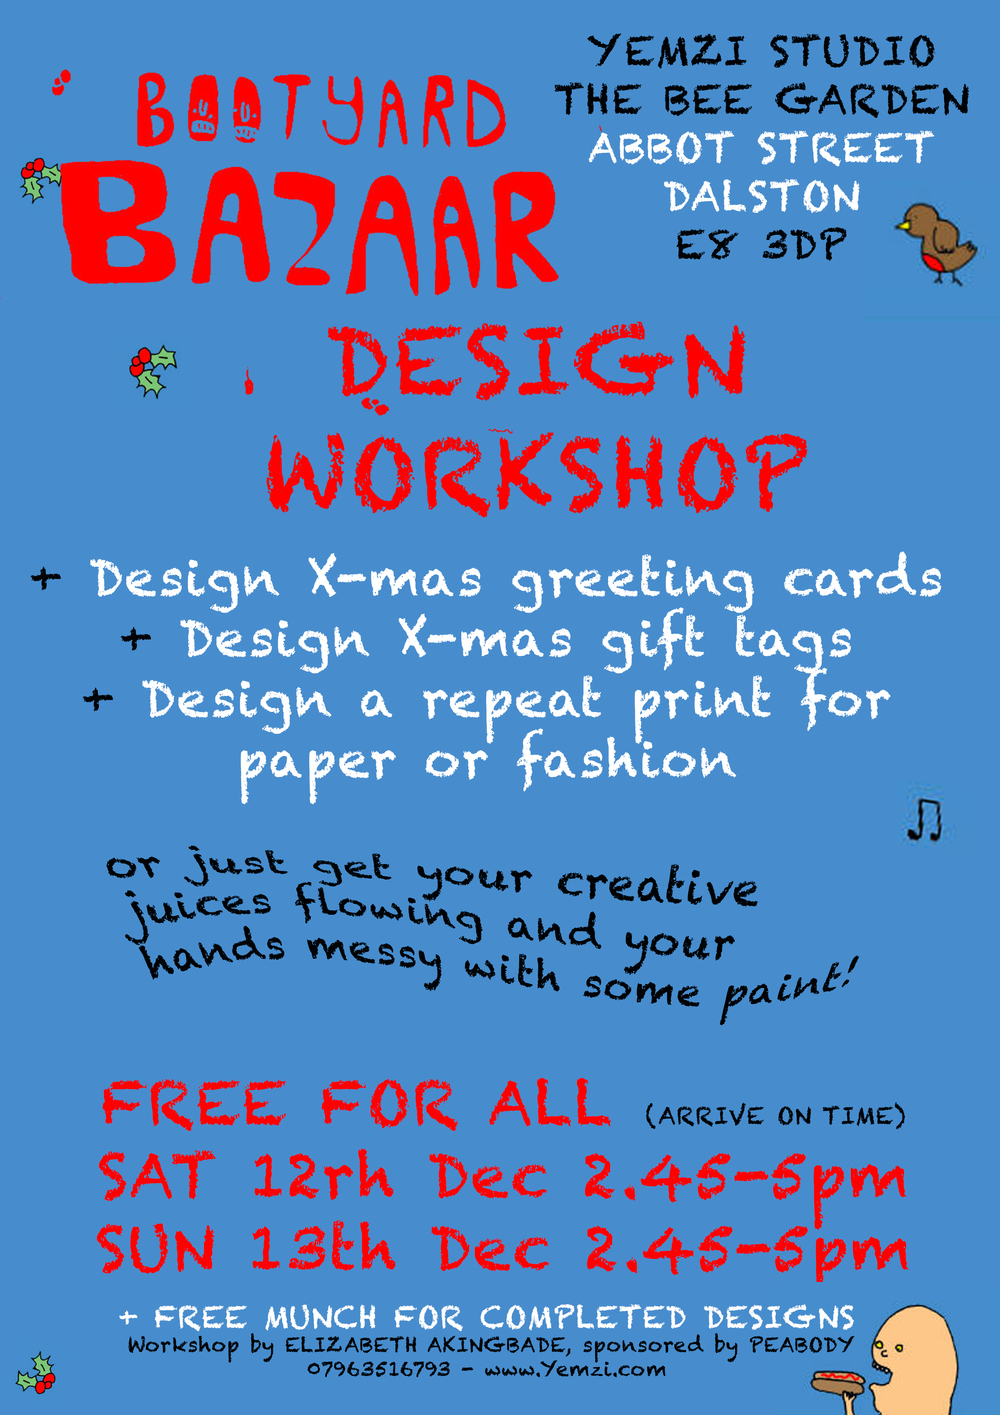 Yemzi's Bootyard X-Mas Design Workshop